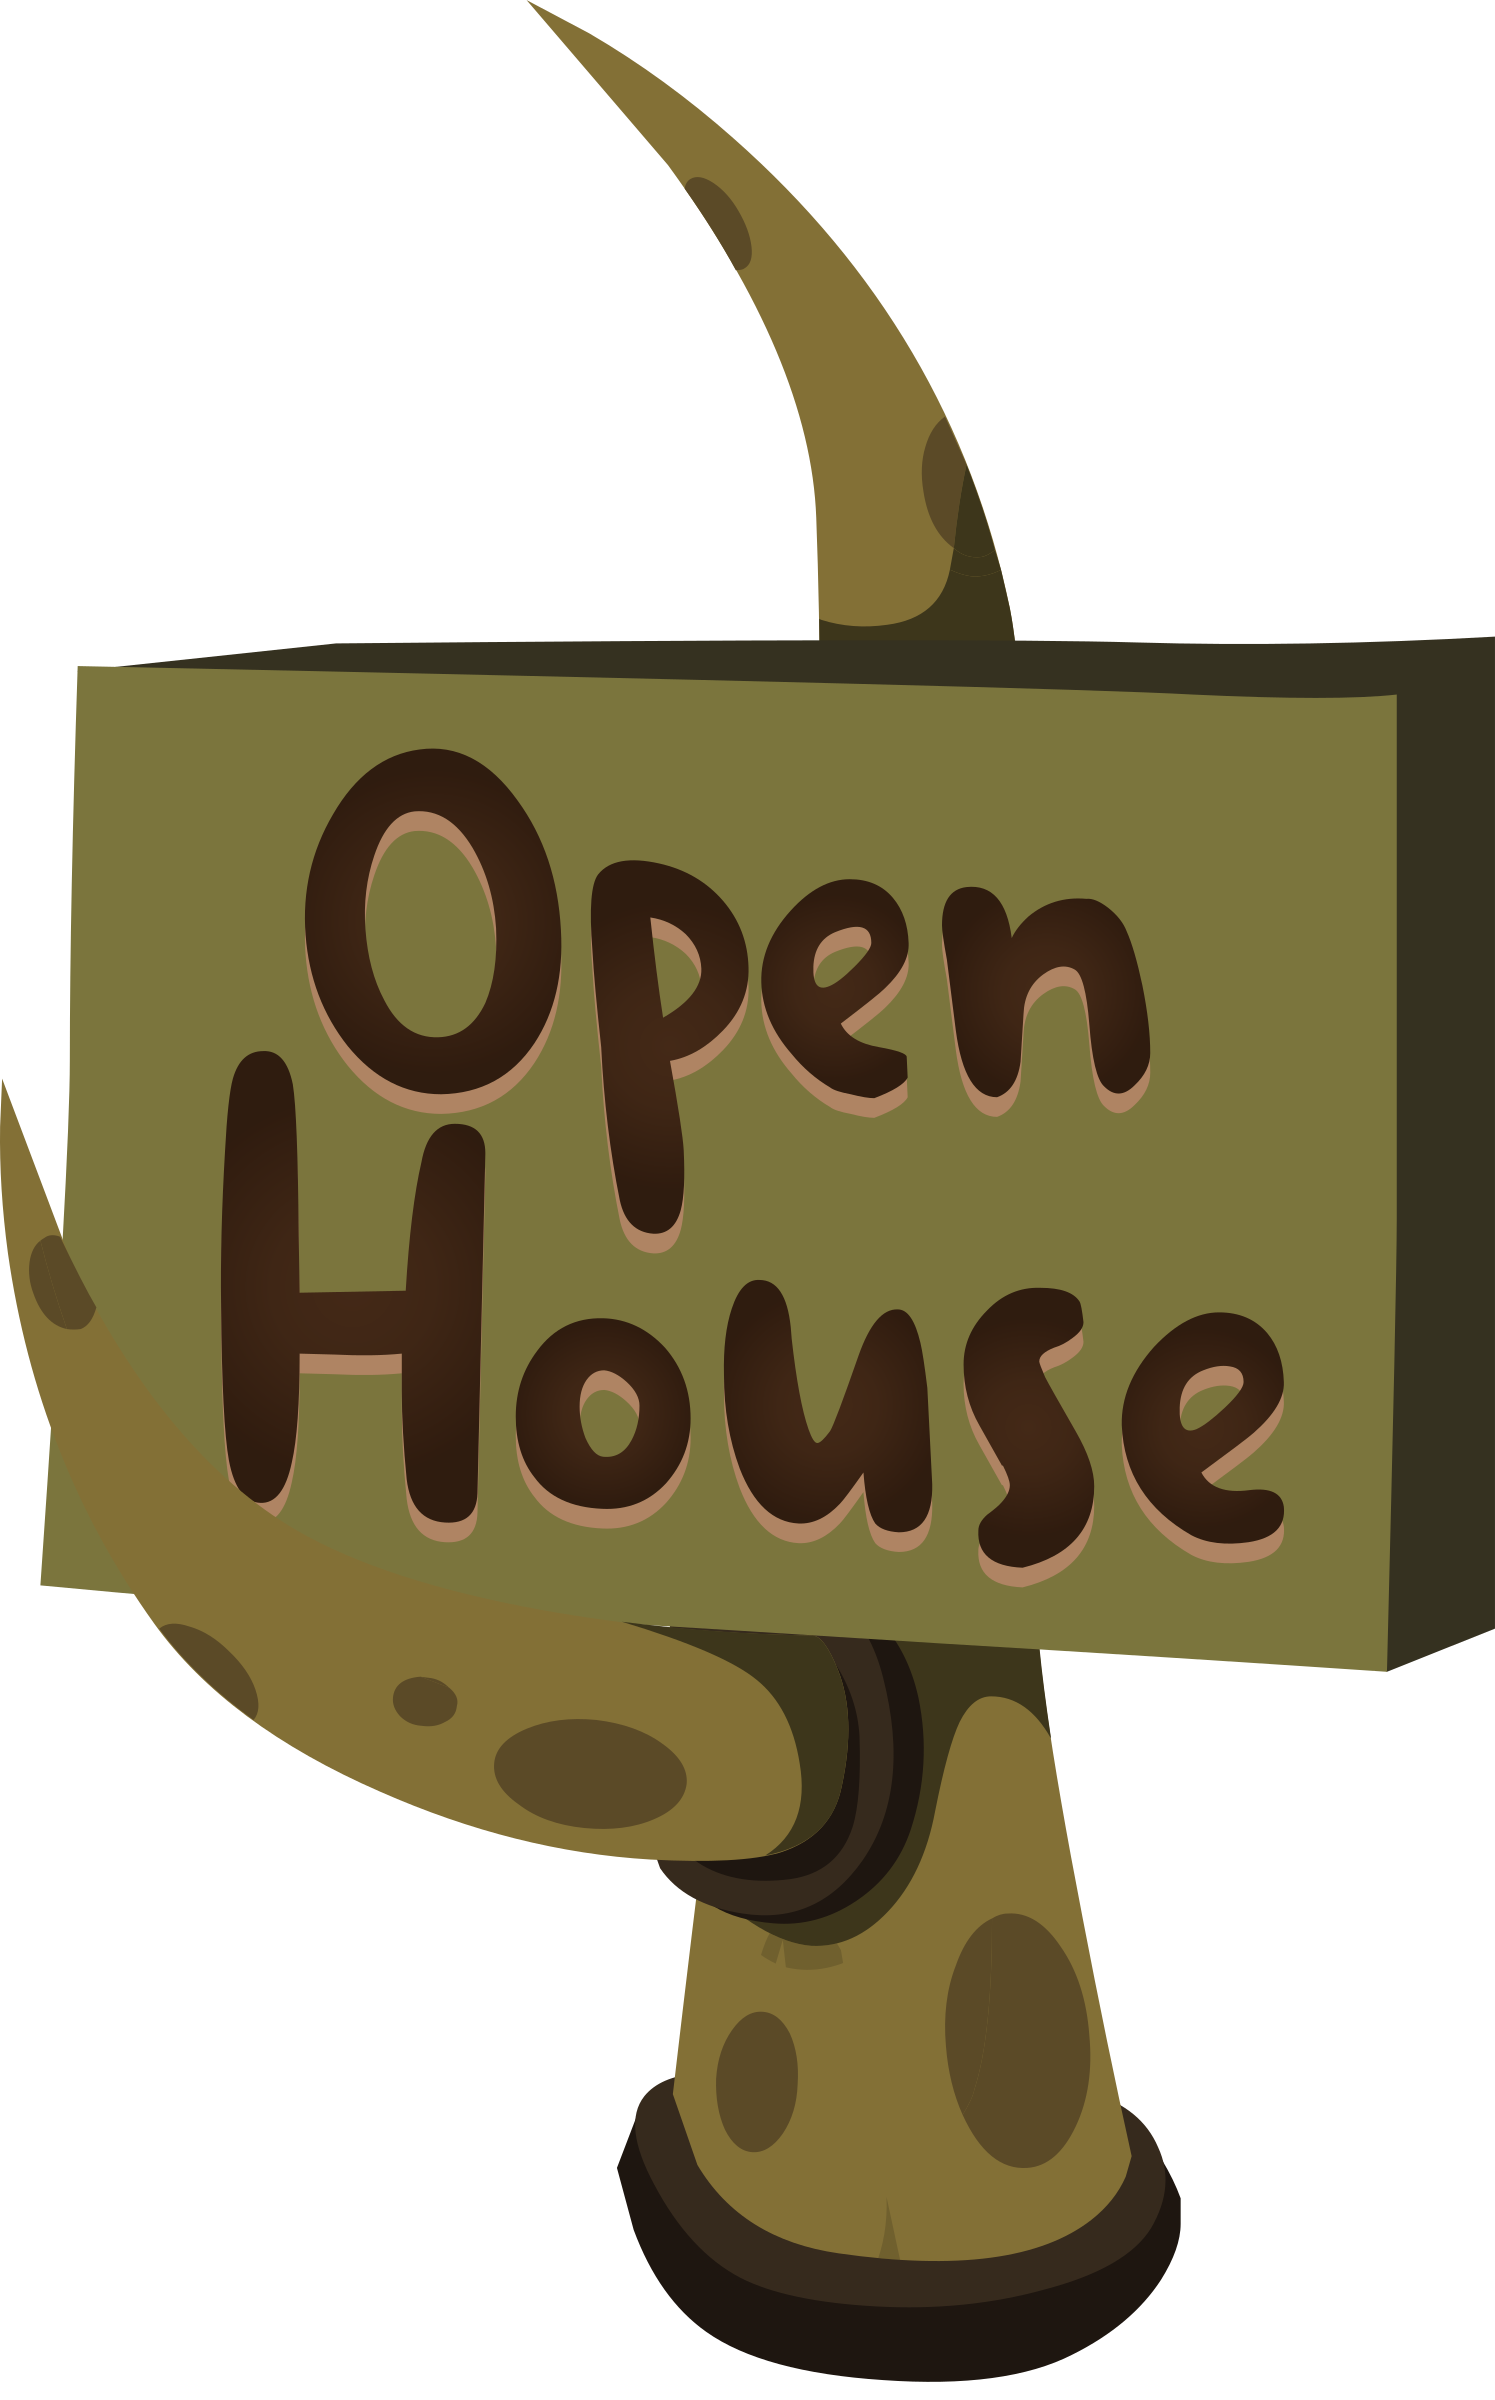 Firebog Open House Sign by glitch